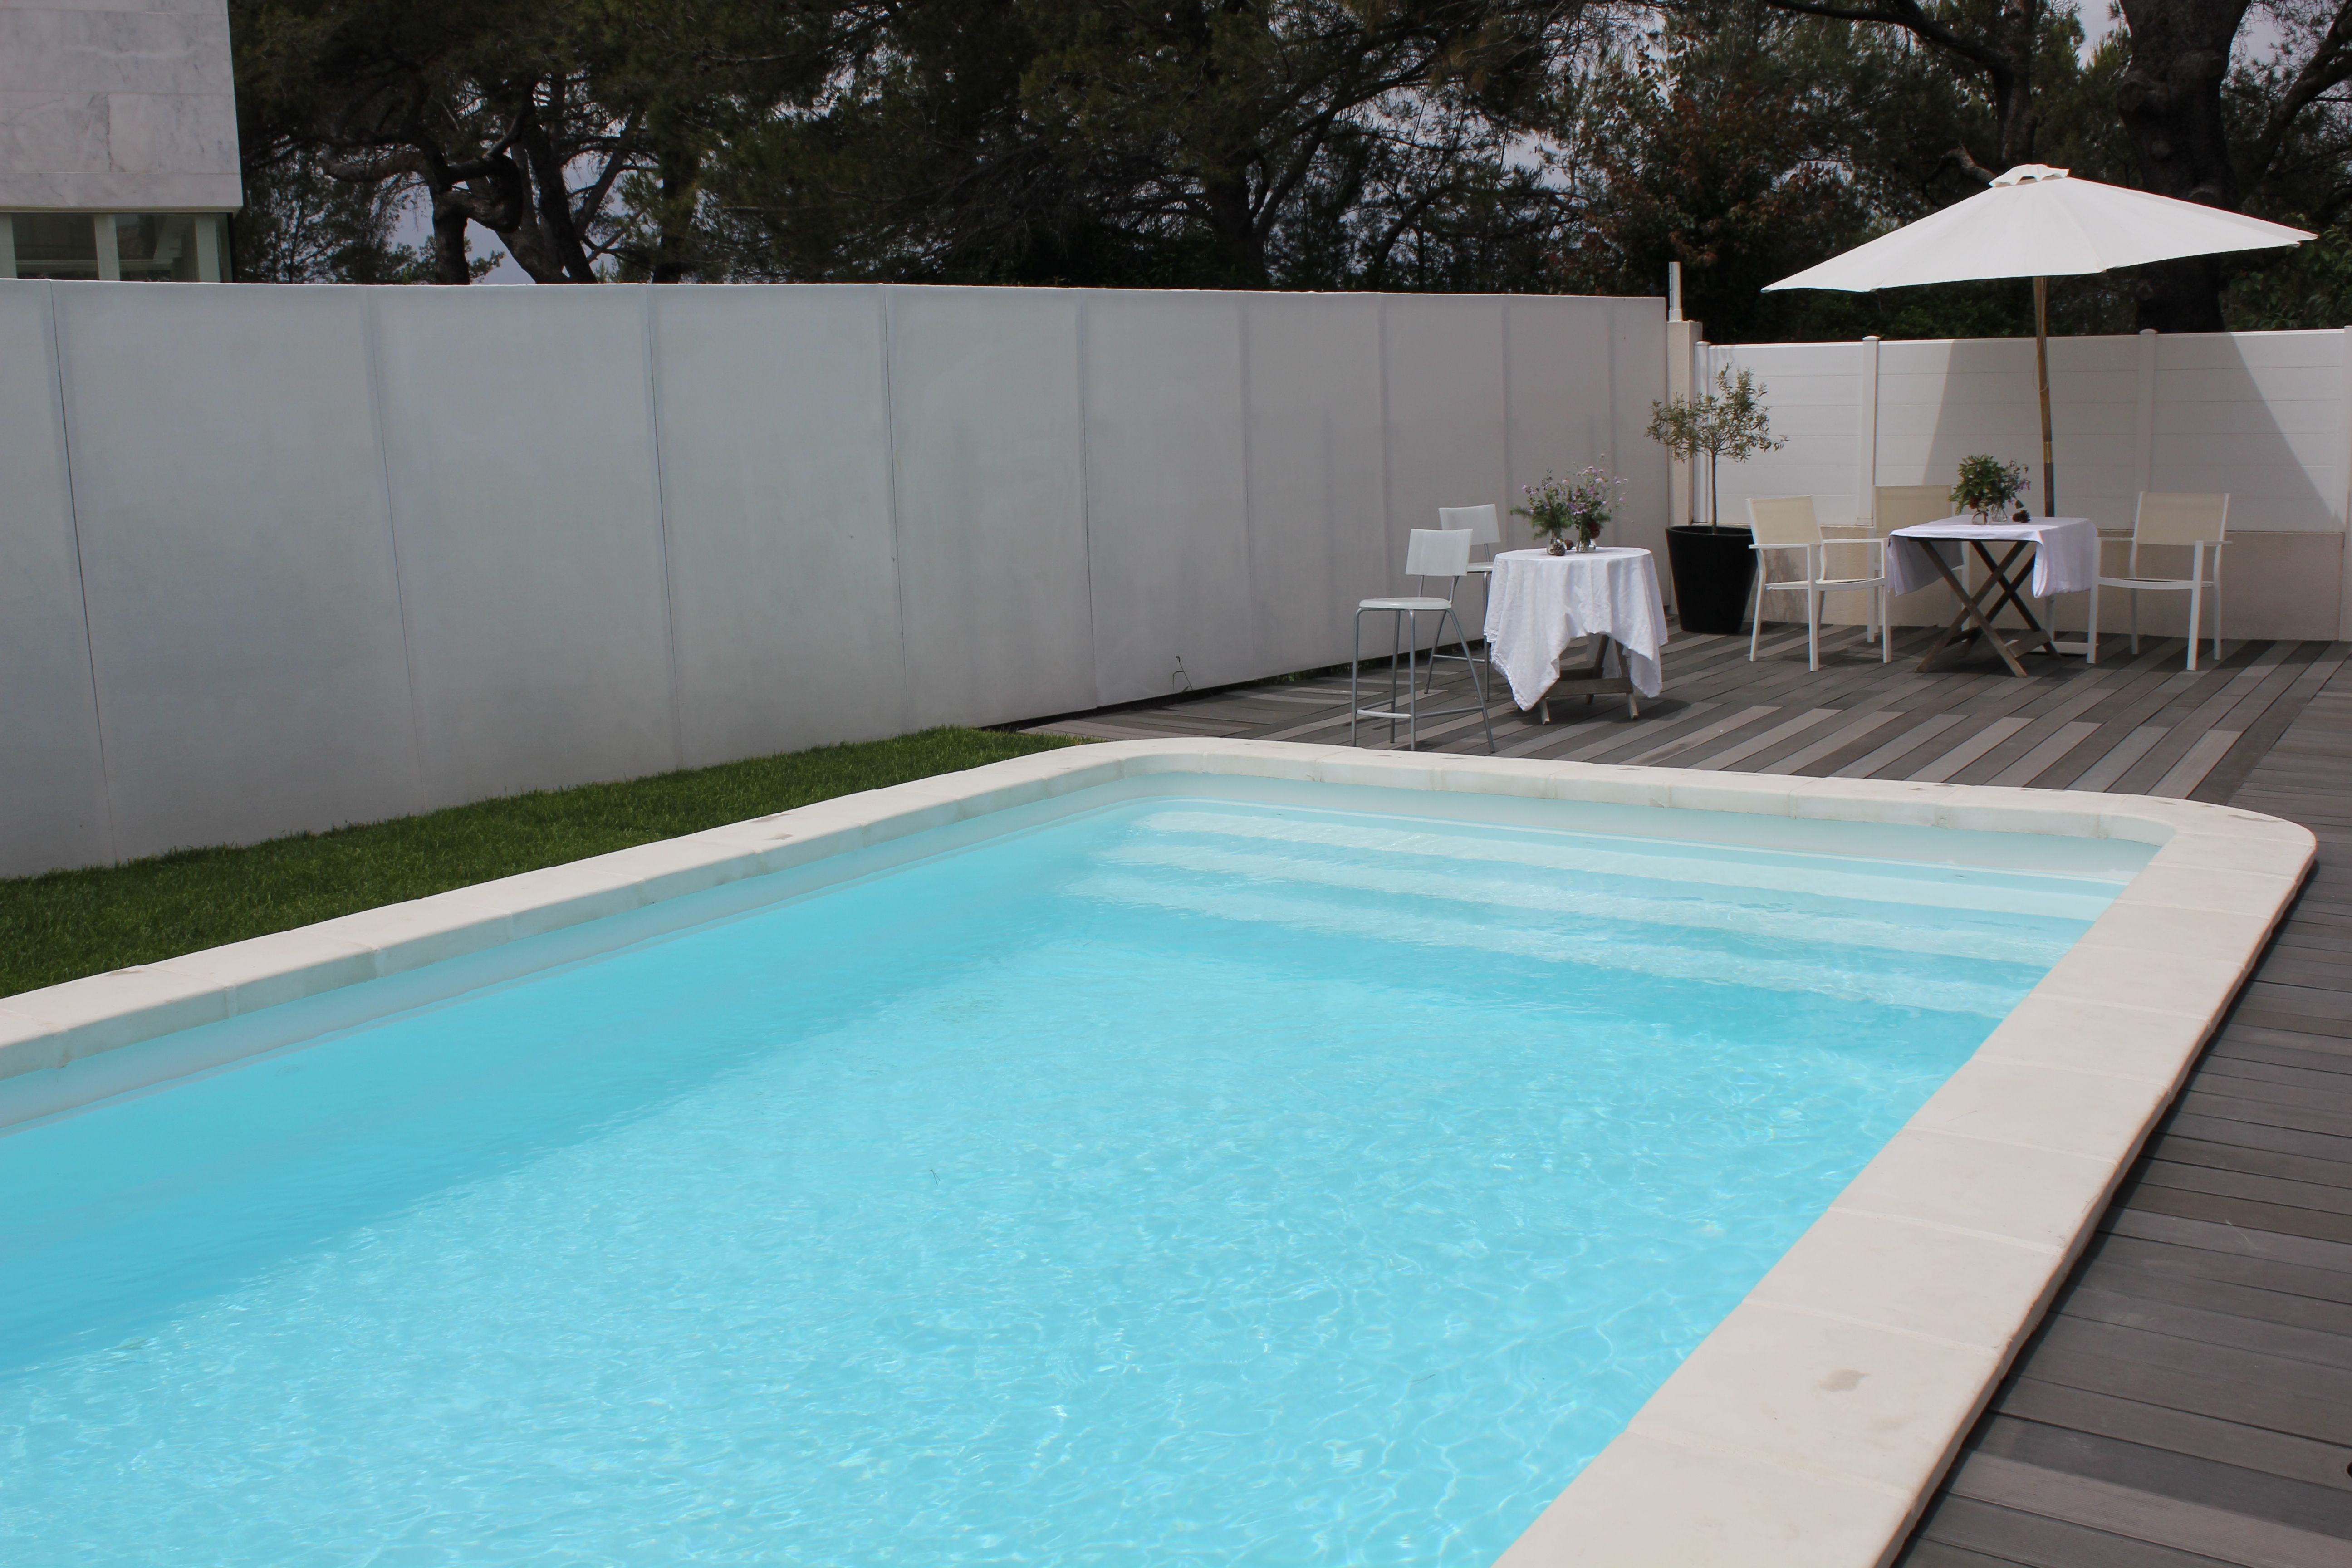 Piscine Coque 8.27X4.20X1.50 M BORDEAUX Pure